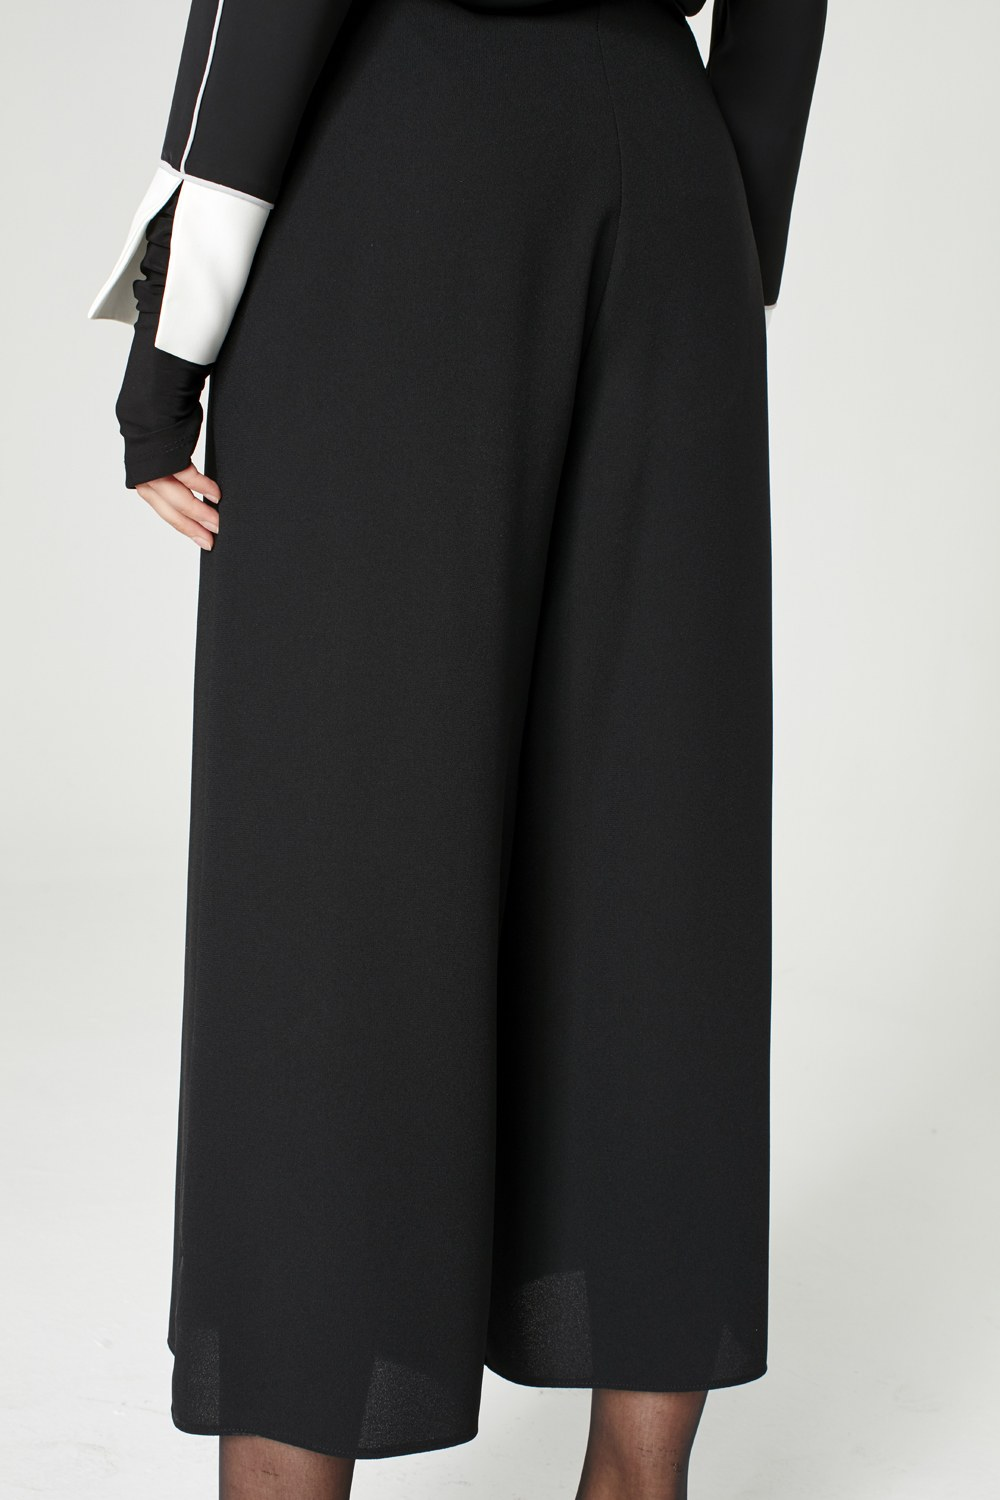 MIZALLE Pants With Wide Cut (Black) (1)